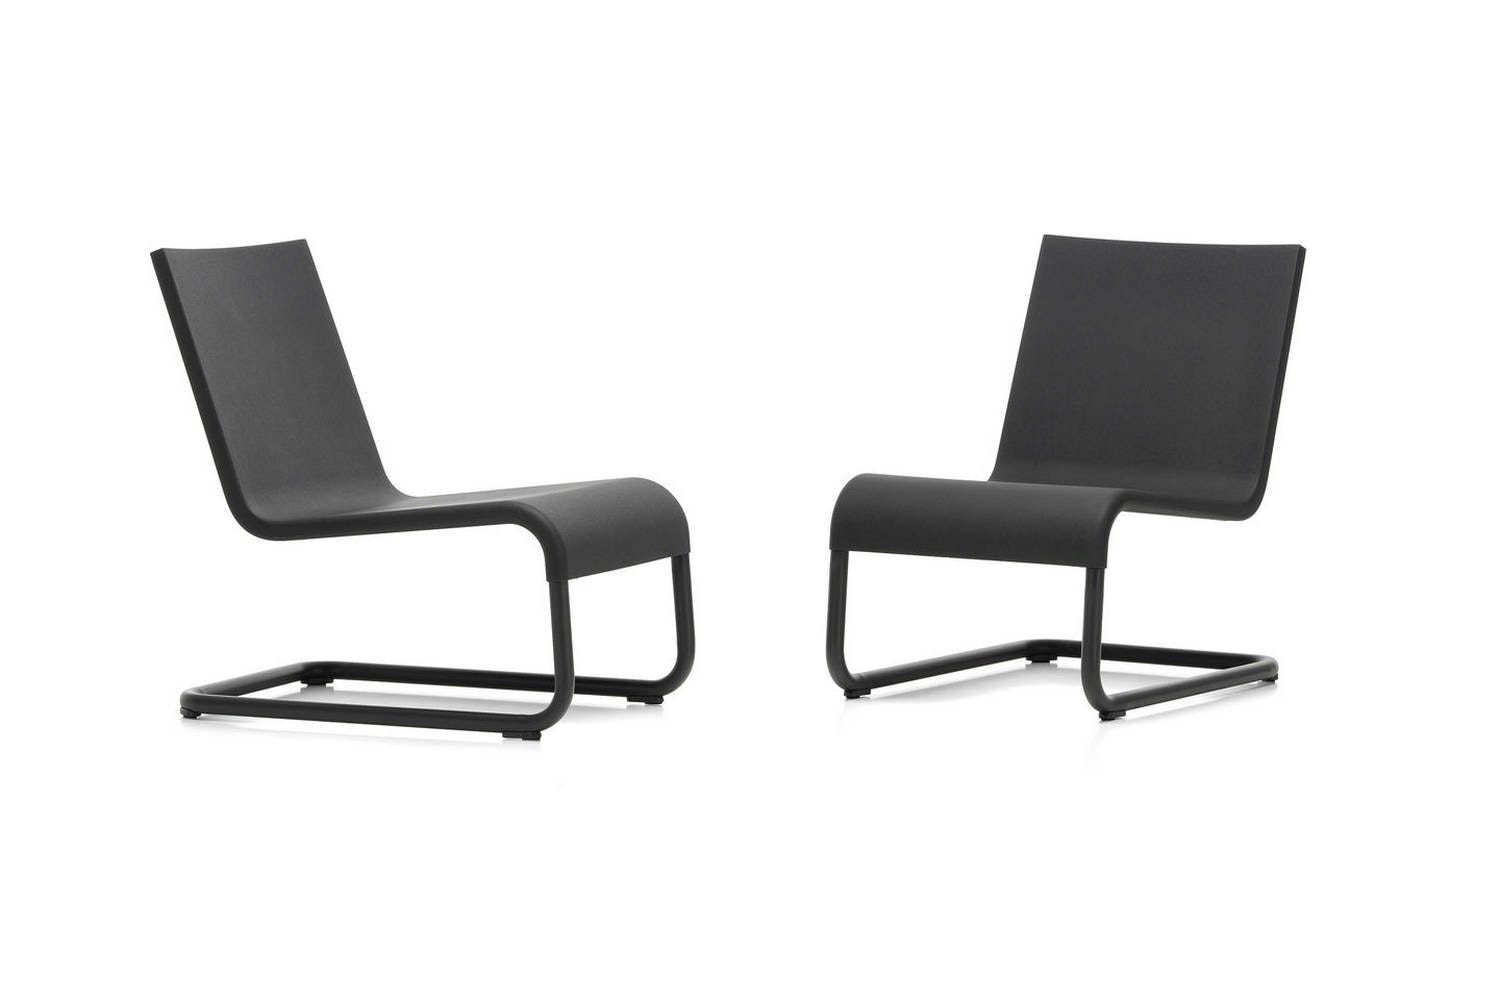 .06 Armchair by Maarten van Severen for Vitra